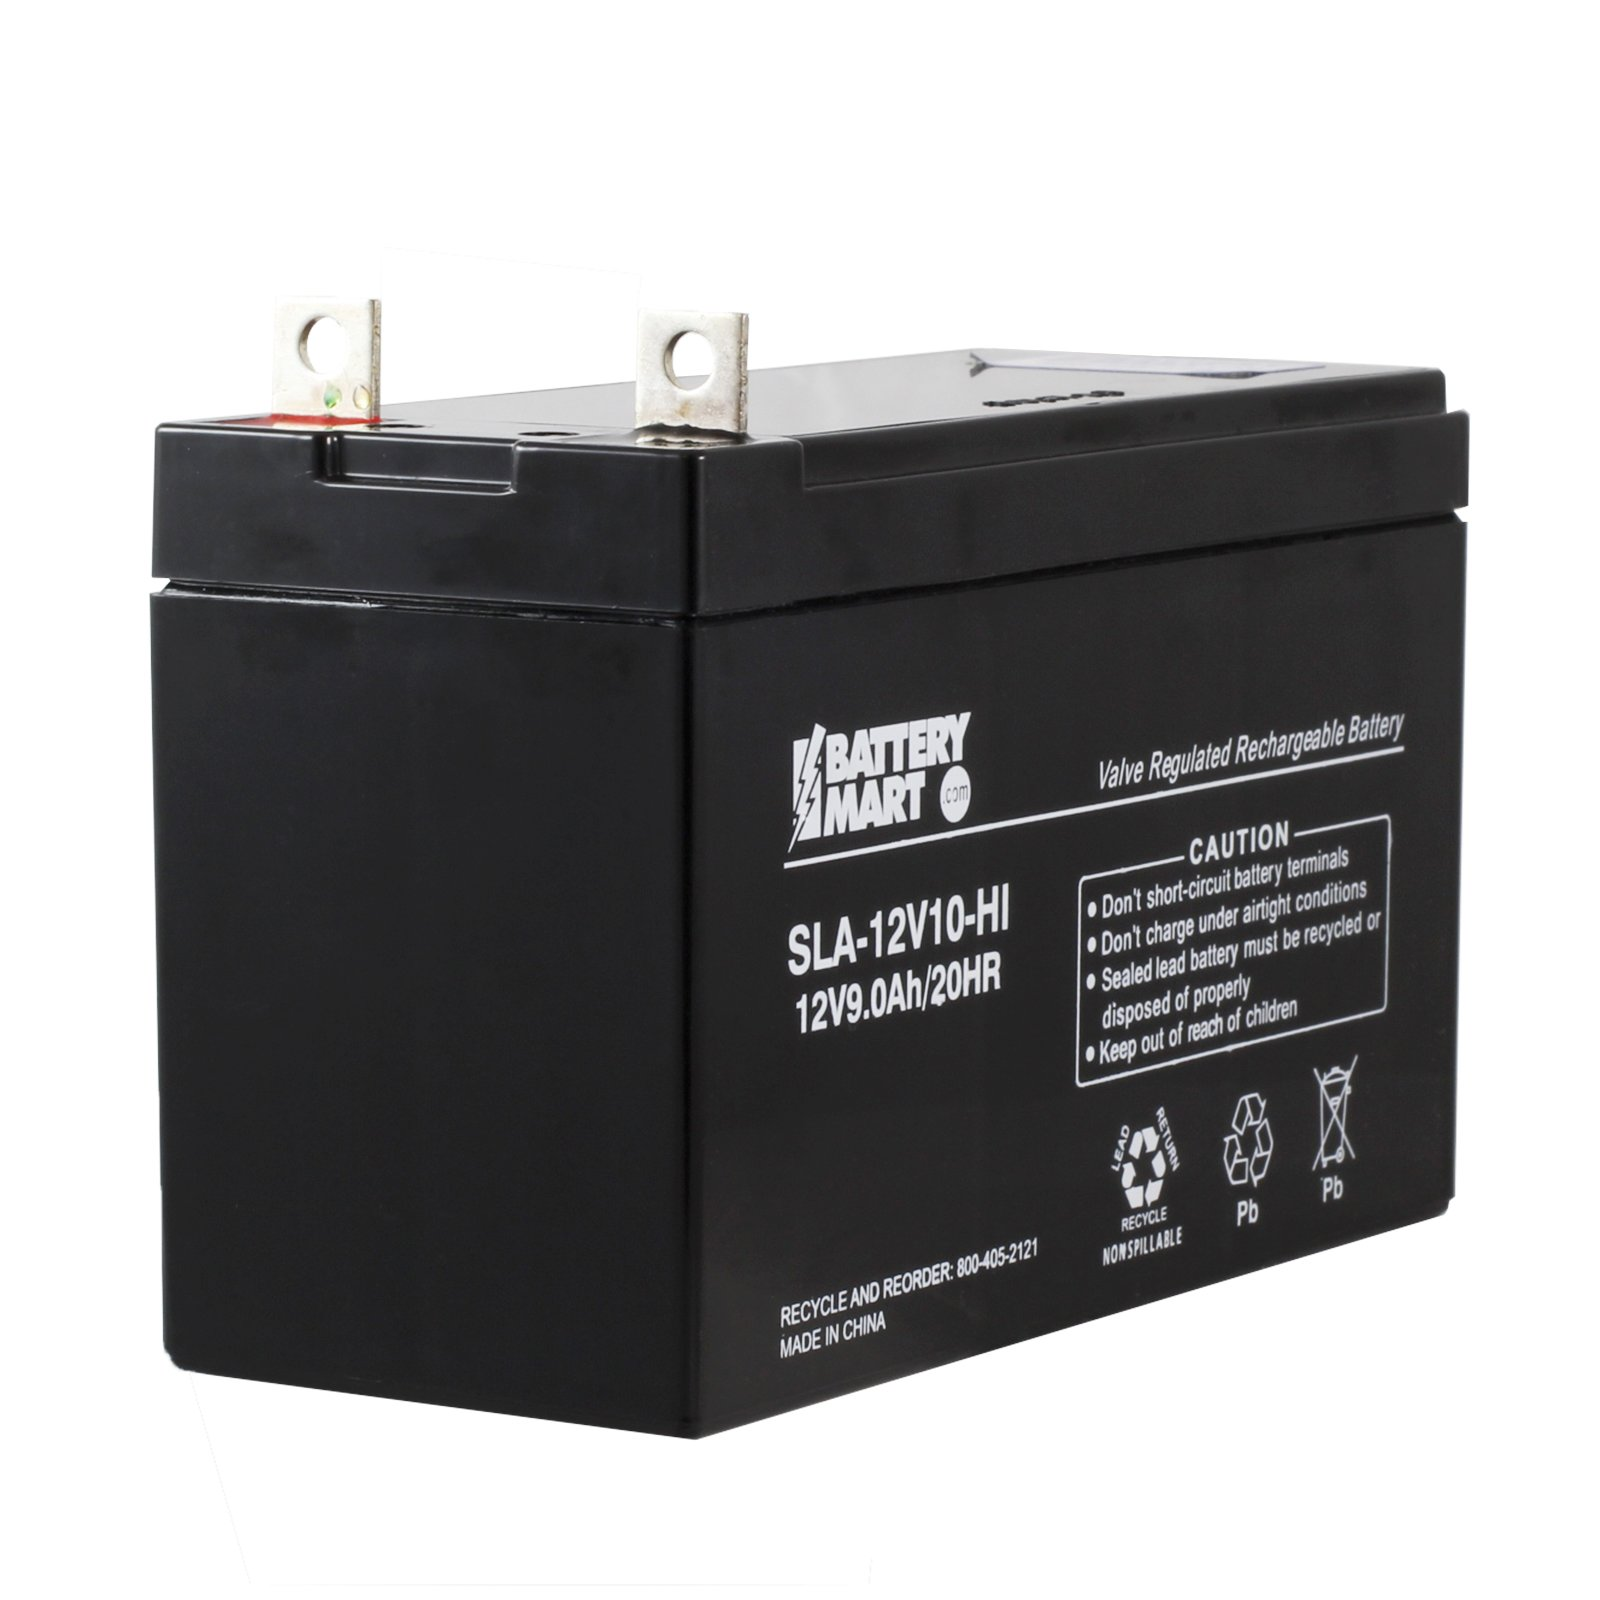 12 Volt, 9 Ah Sealed Lead Acid Rechargeable Battery with ...